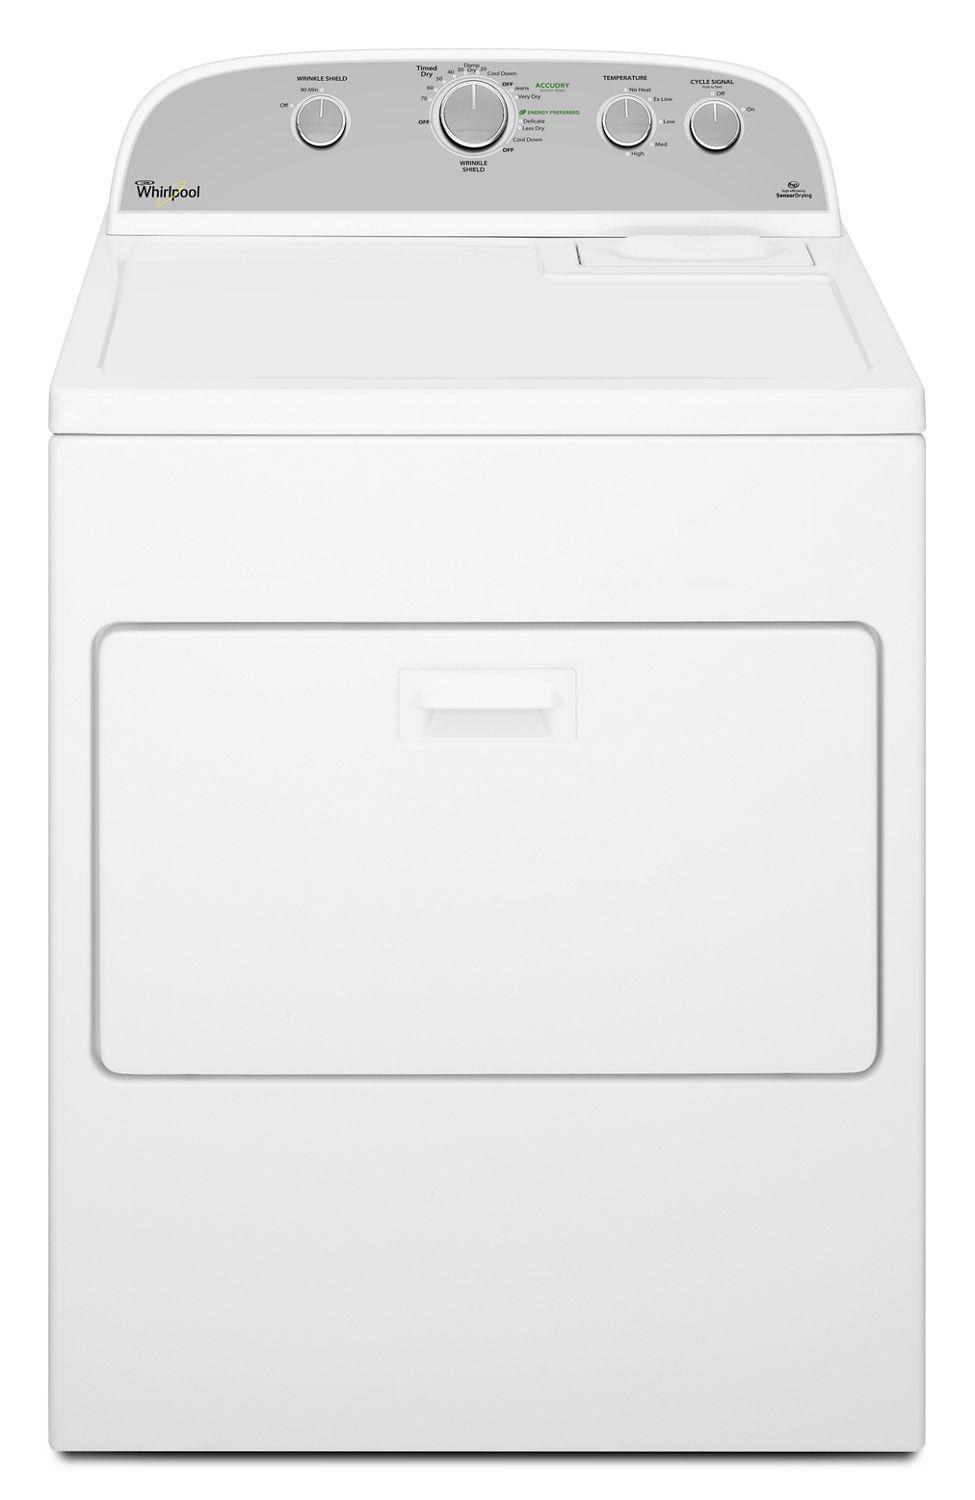 Whirlpool7.0 Cu.Ft Top Load Gas Dryer With Wrinkle Shield Plus White